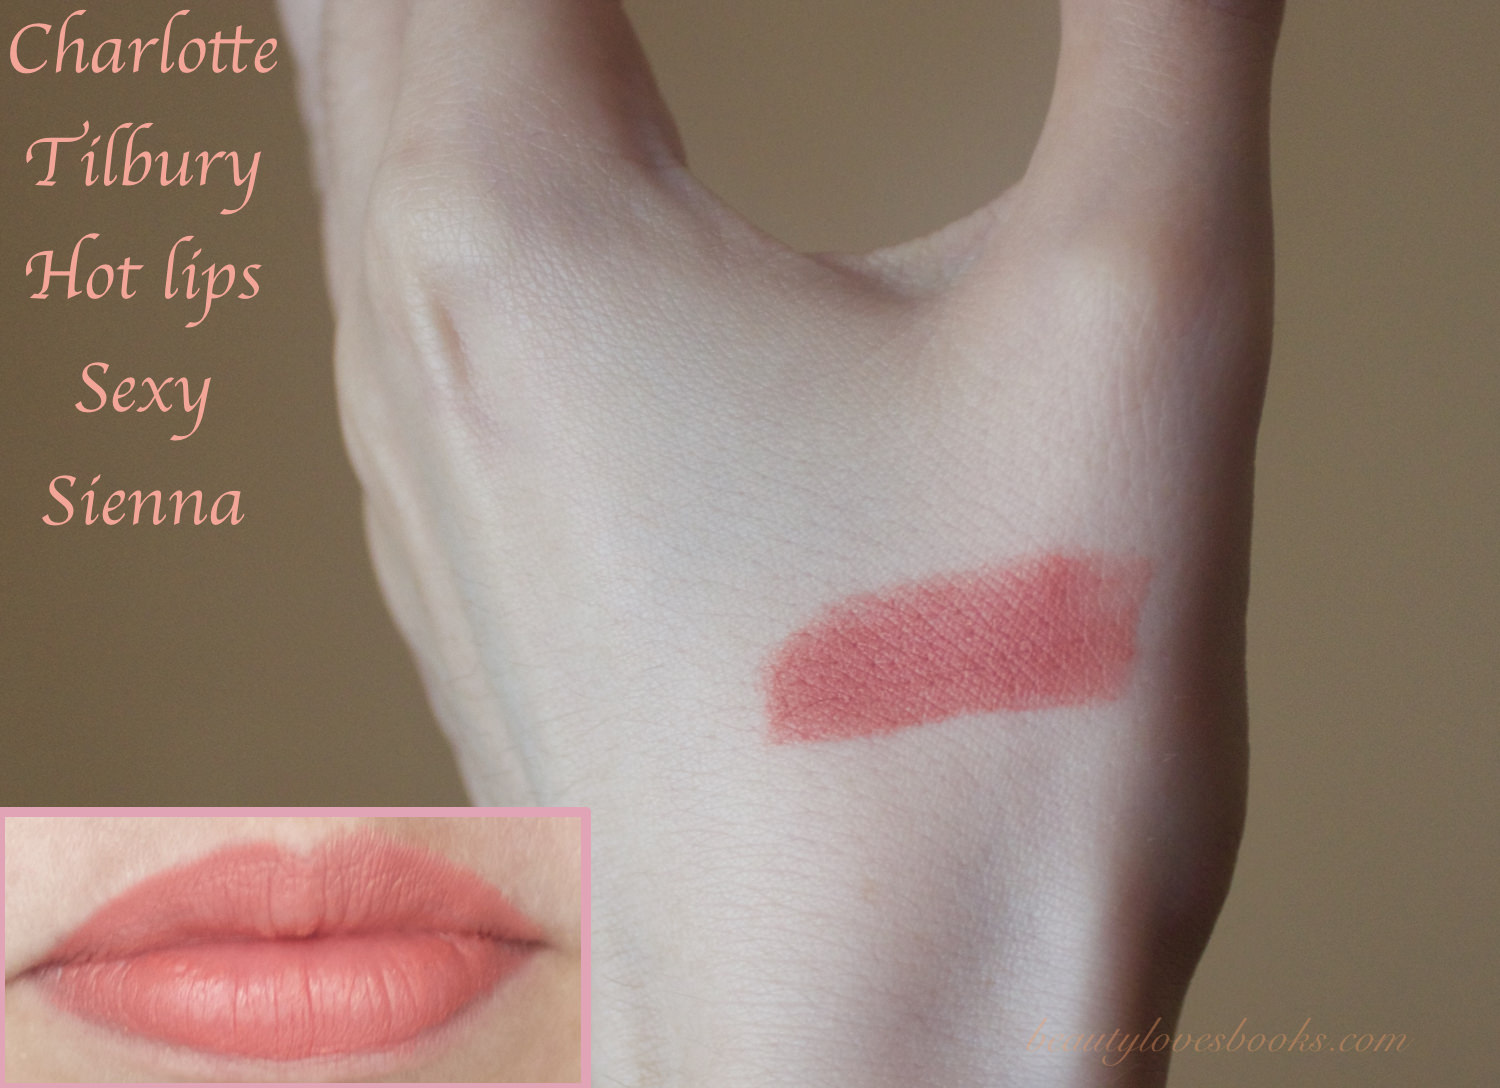 Charlotte Tilbury Hot lips collection Sexy Sienna swatches